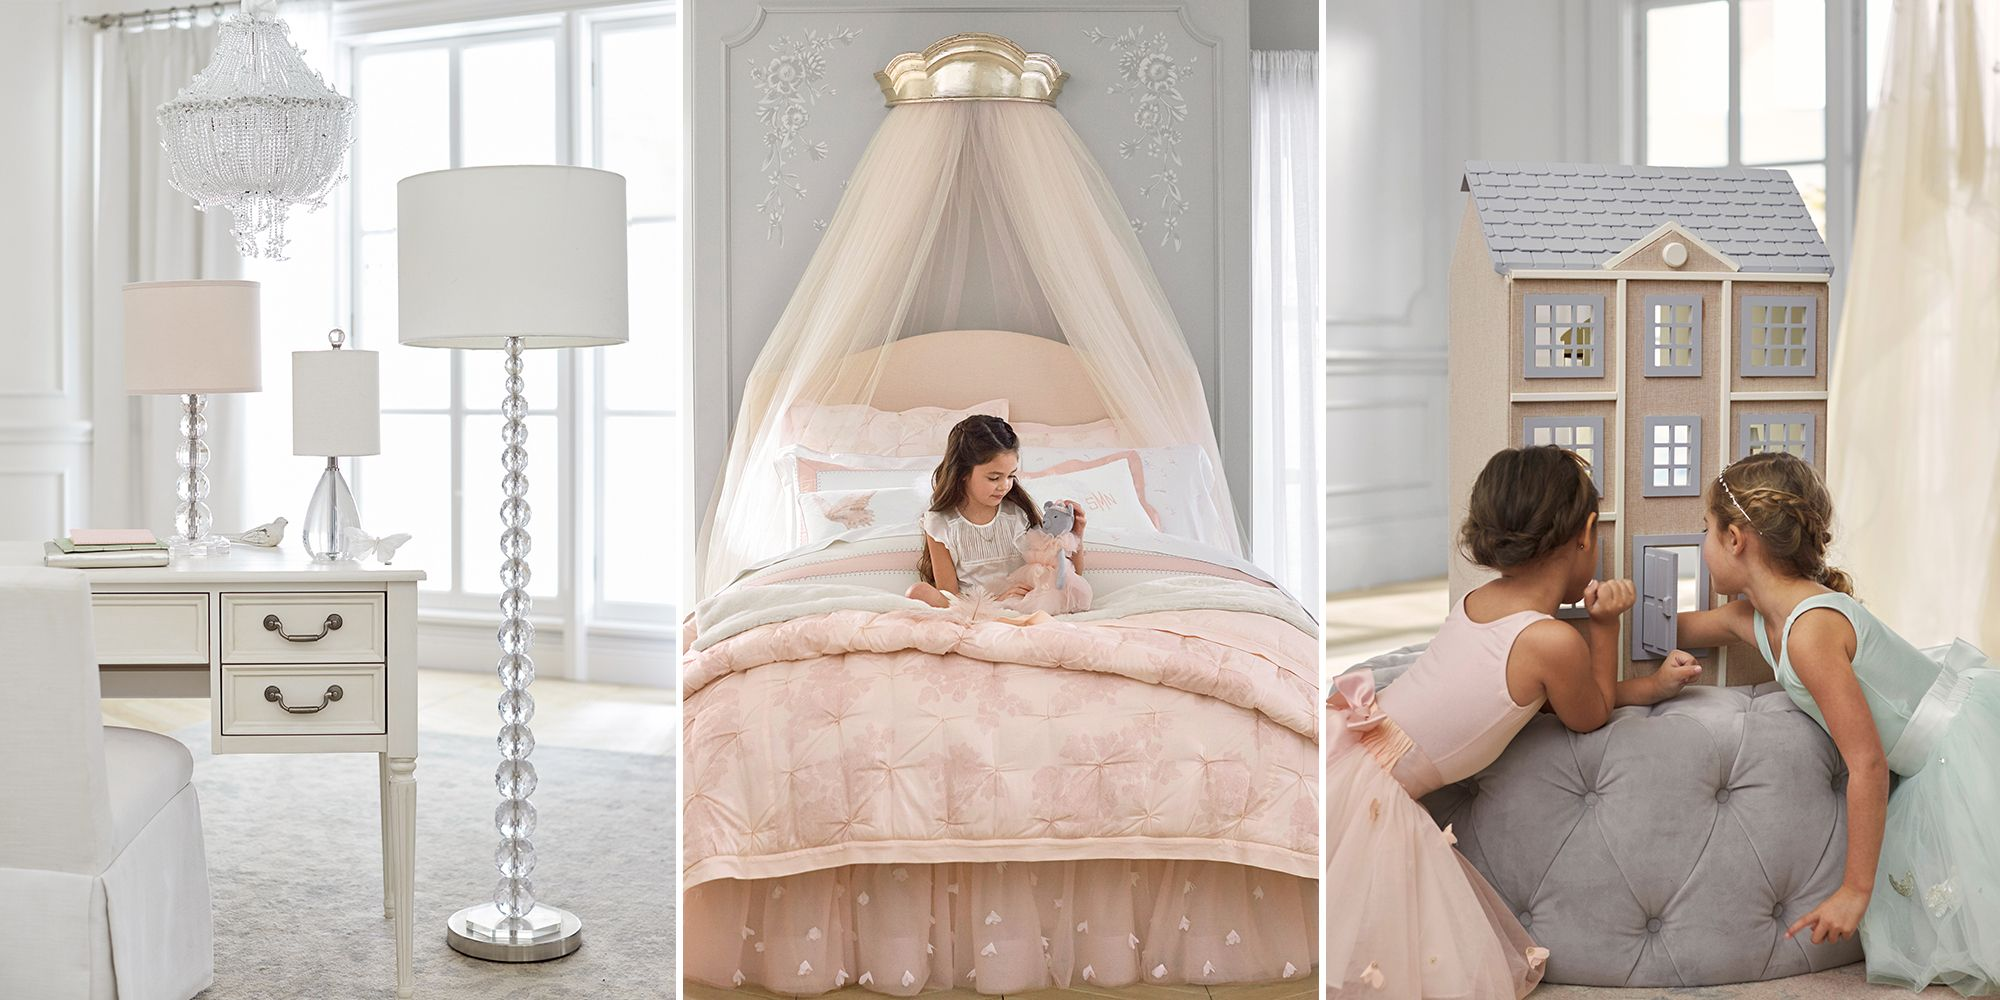 16 Best Items From The Monique Lhuillier For Pottery Barn